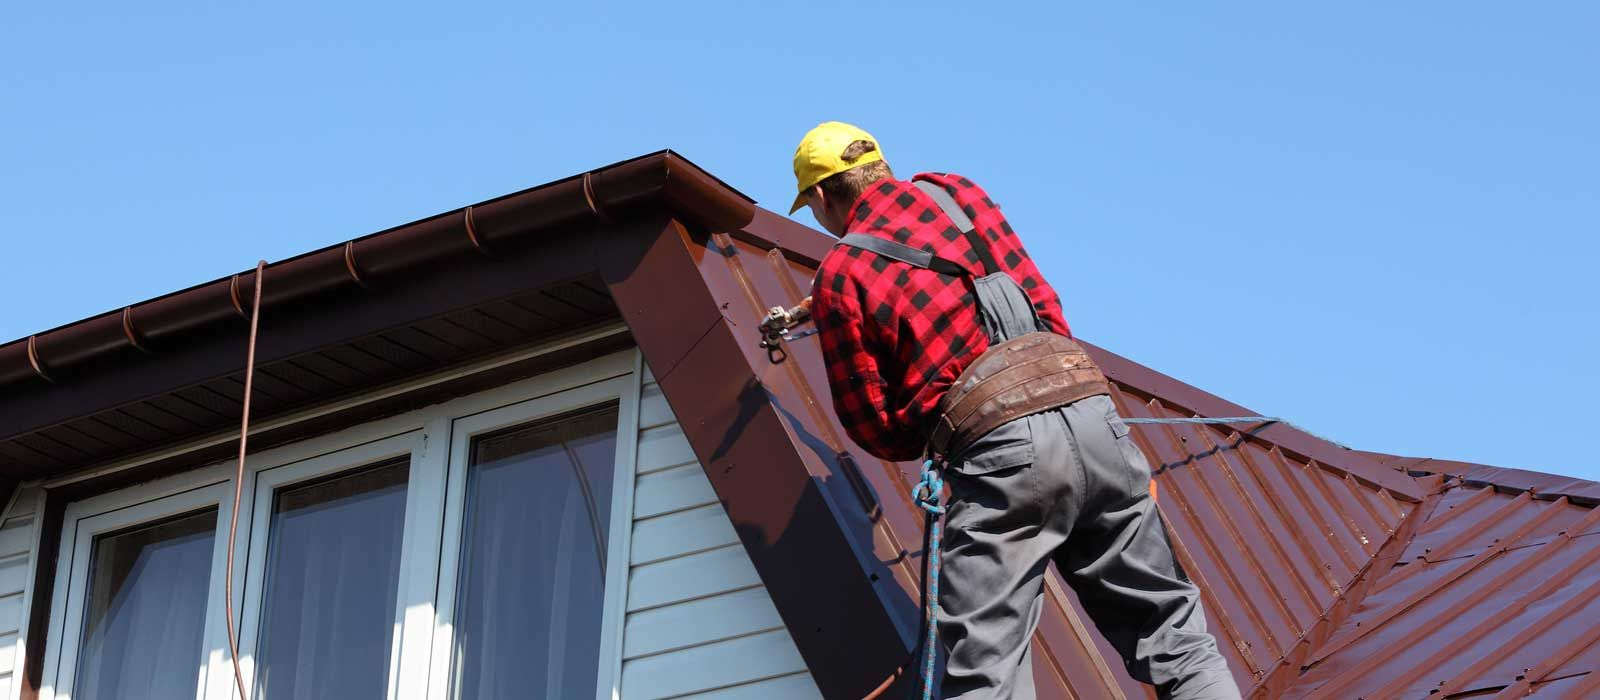 Roofing Company Best roofing company, Cool roof, Roofing